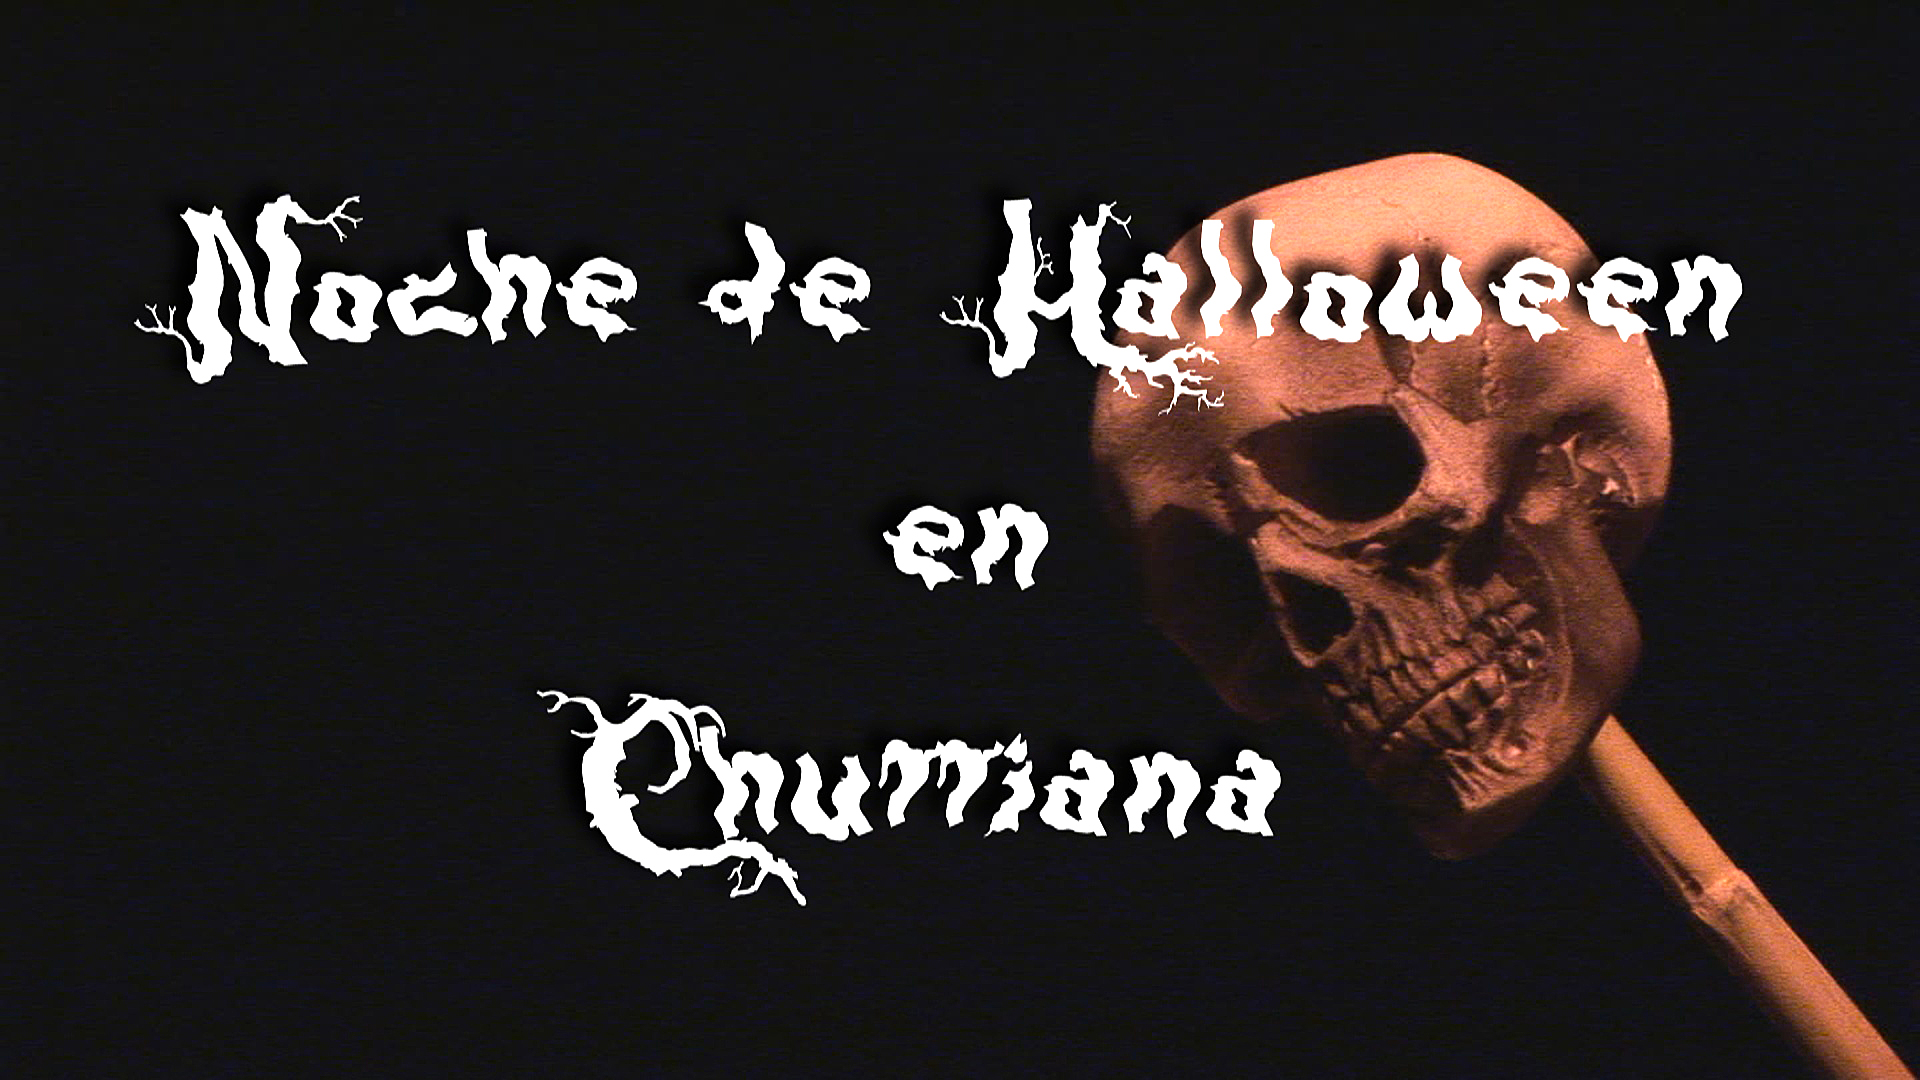 Noche de Halloween en Churriana